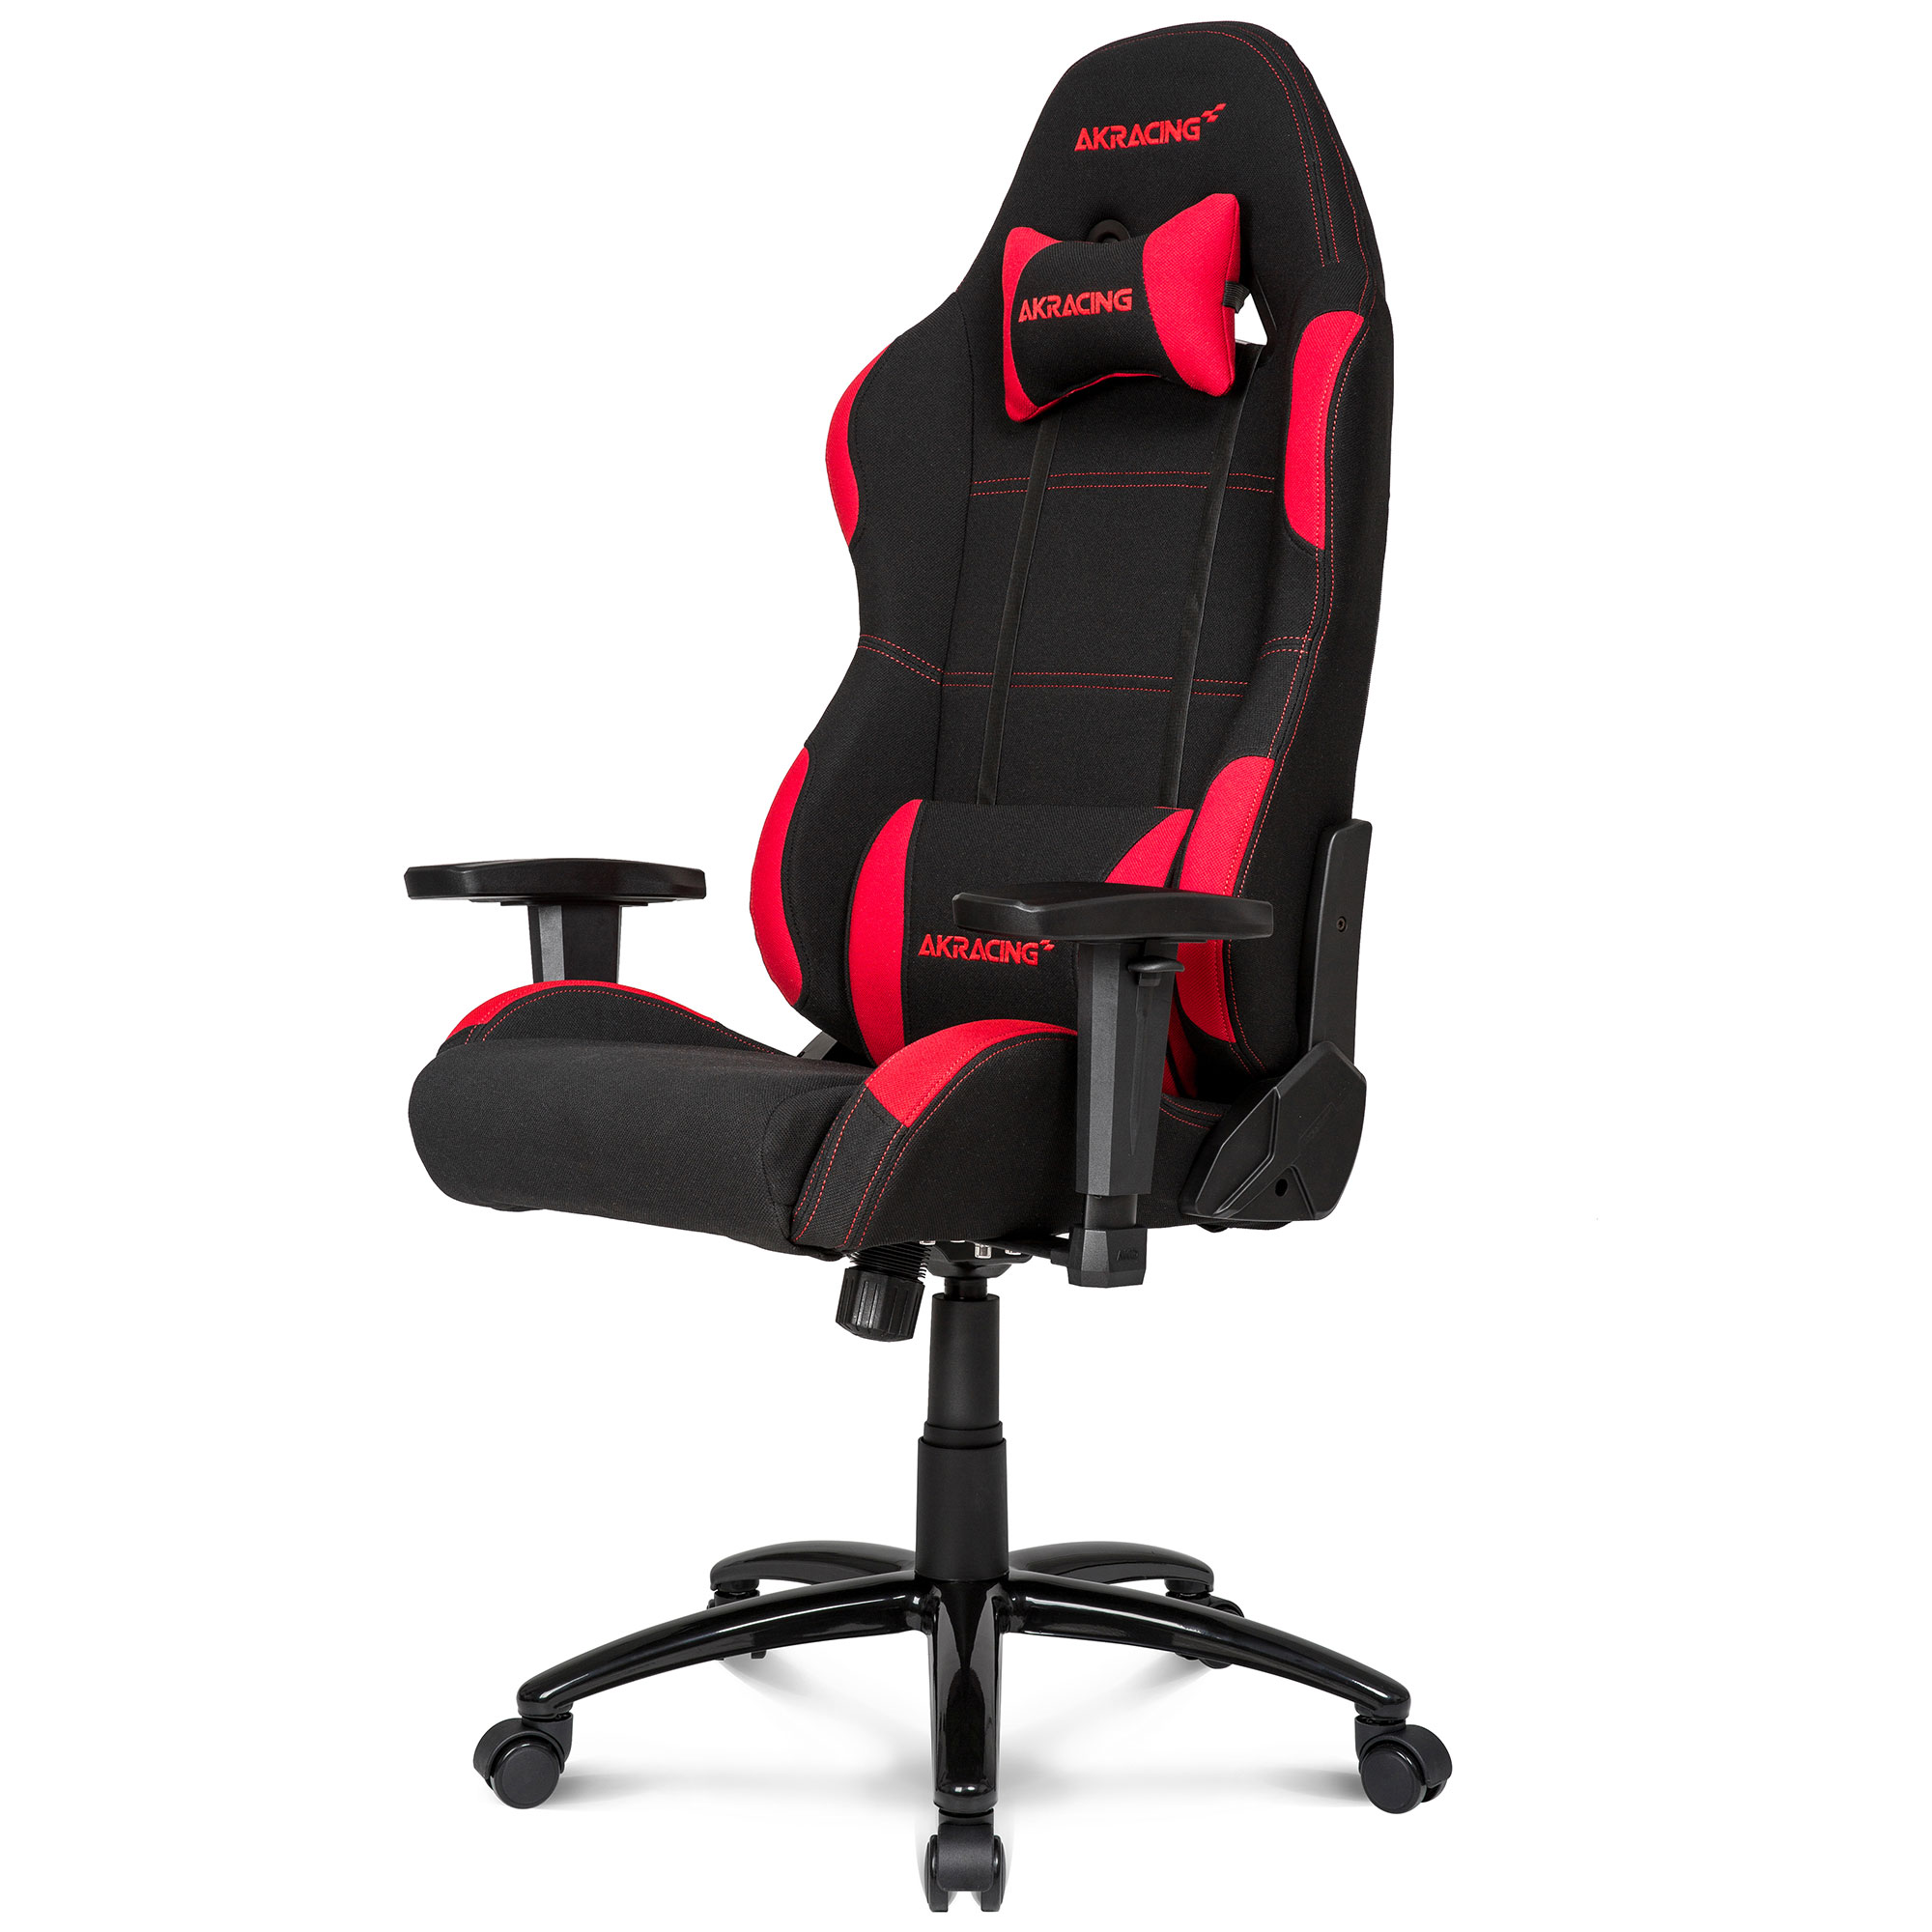 akracing gaming chair rouge fauteuil gamer akracing. Black Bedroom Furniture Sets. Home Design Ideas